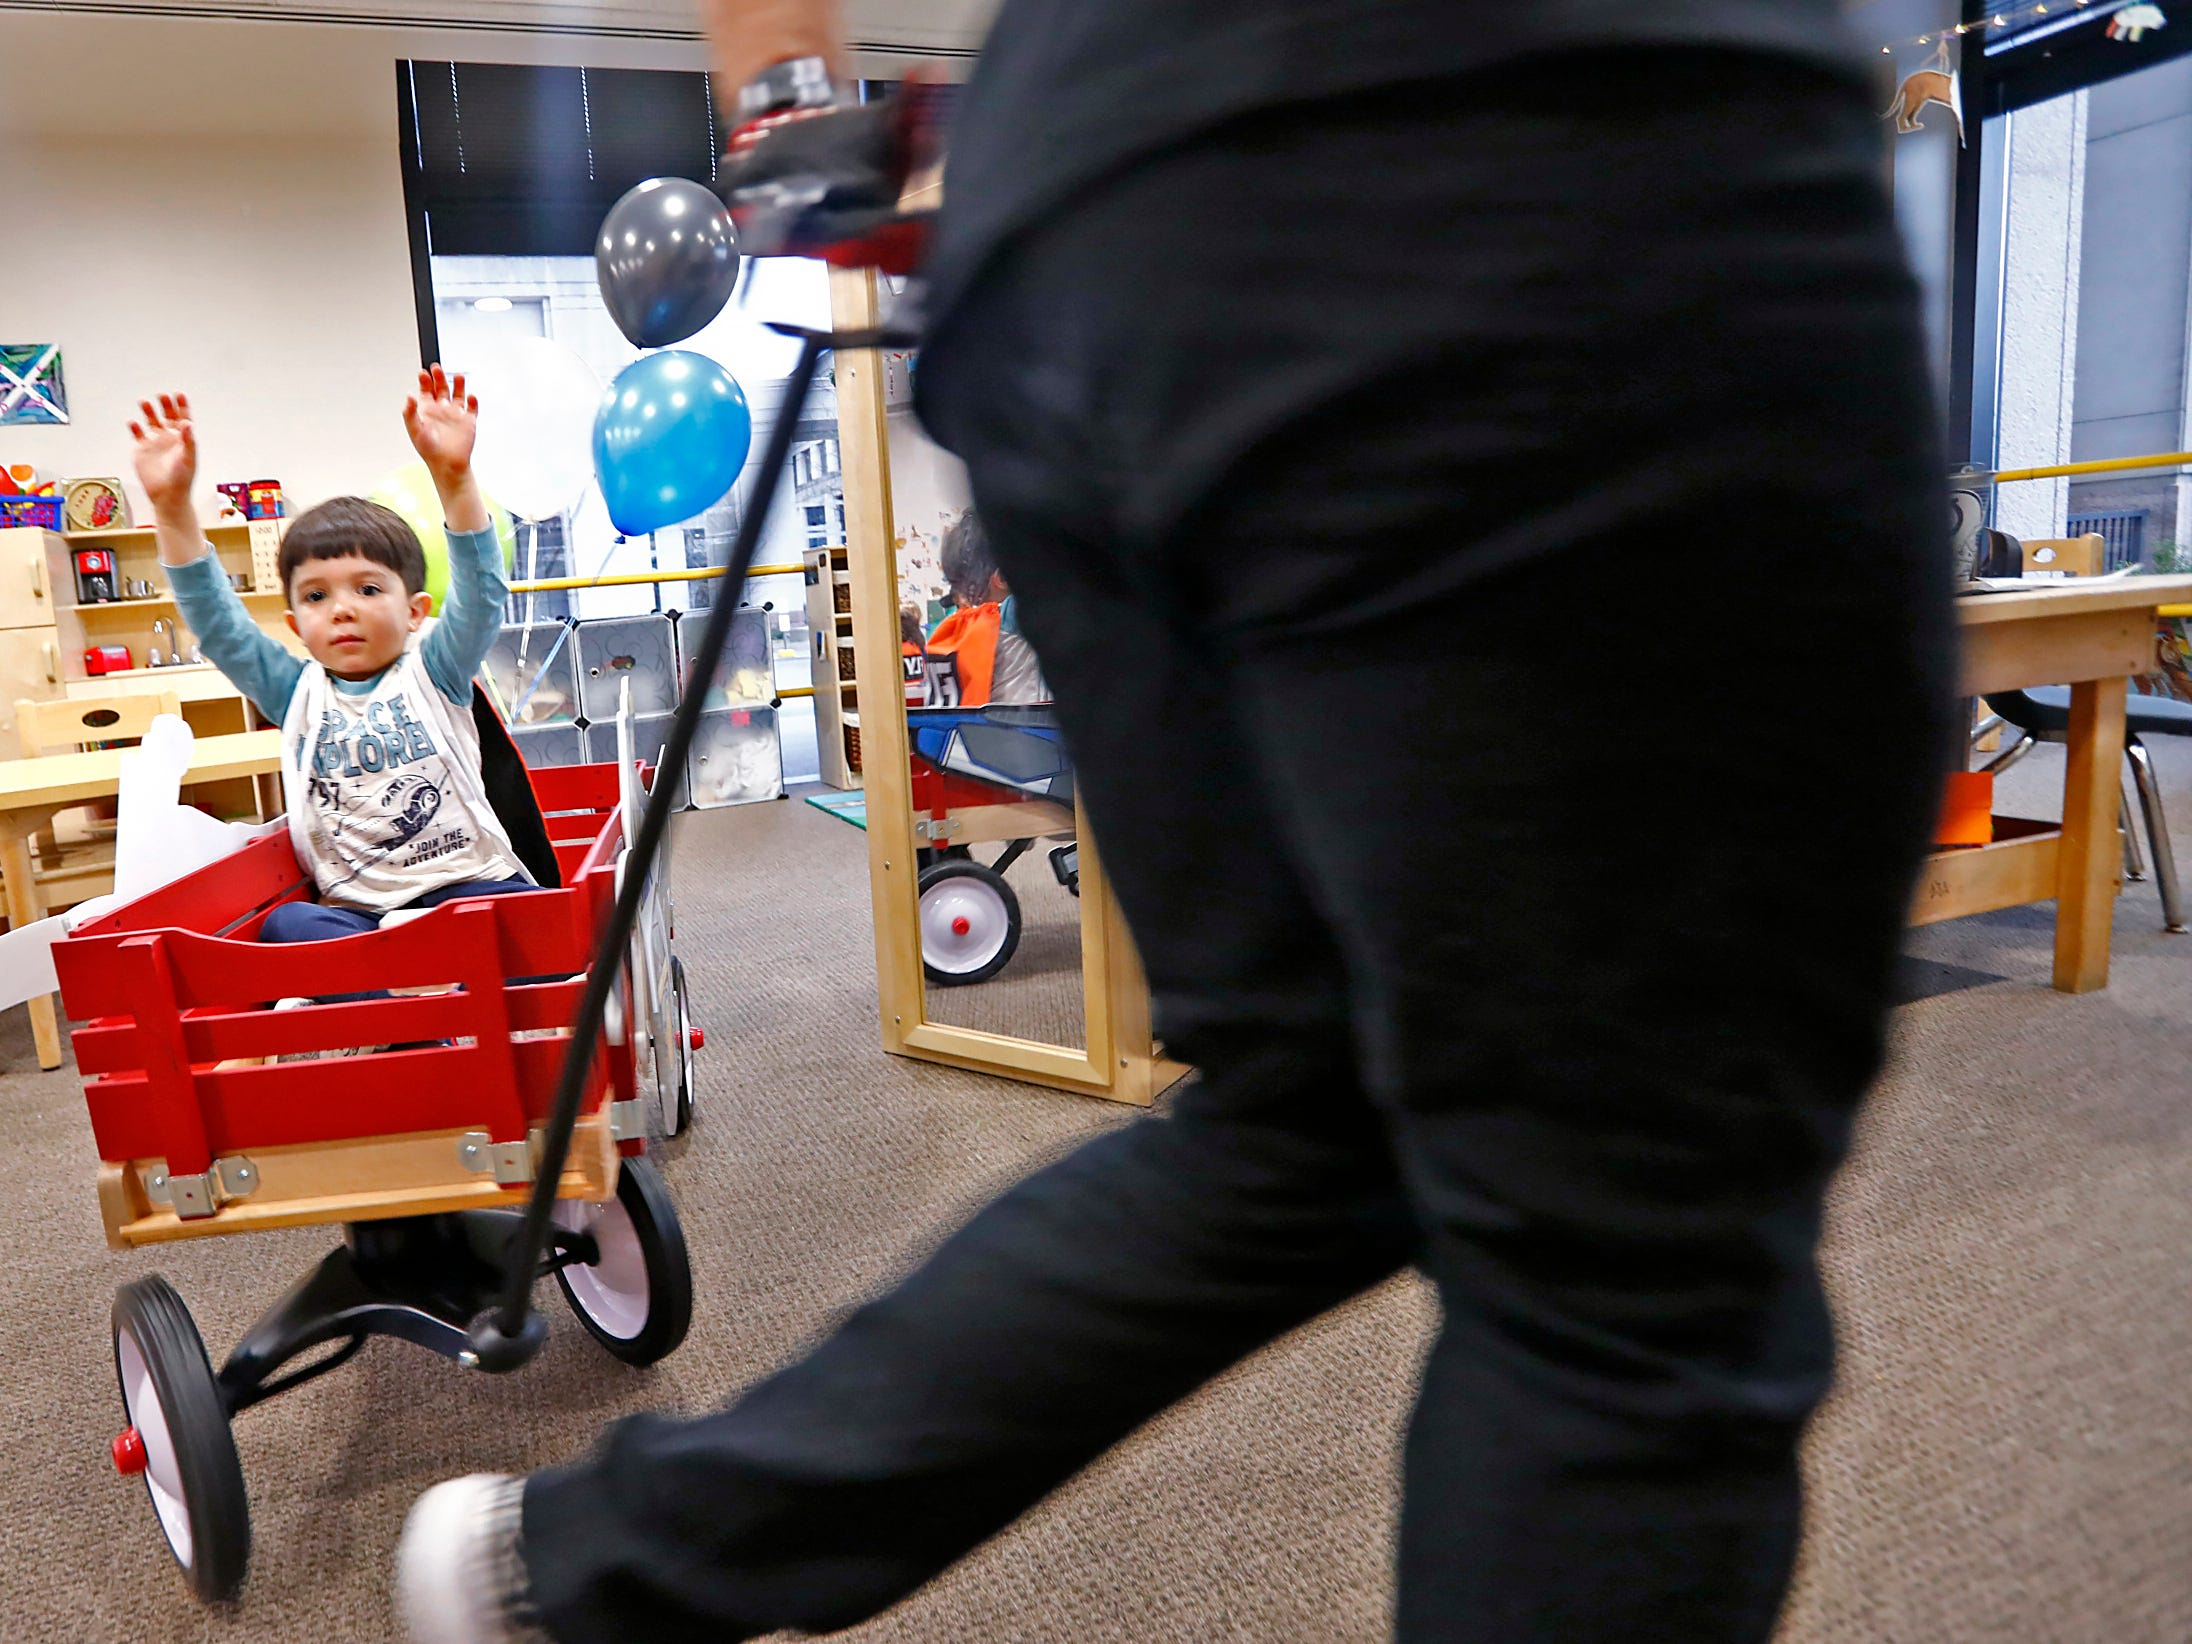 Adam Gayed puts his hands up as he get a wagon ride from Supercross racer Mike Alessi visiting with kids at Day Early Learning Center, Thursday, March 14, 2019.  Alessi provided Supercross rider jerseys and hats for the kids and gave wagon rides, on a break before the upcoming Supercross race.